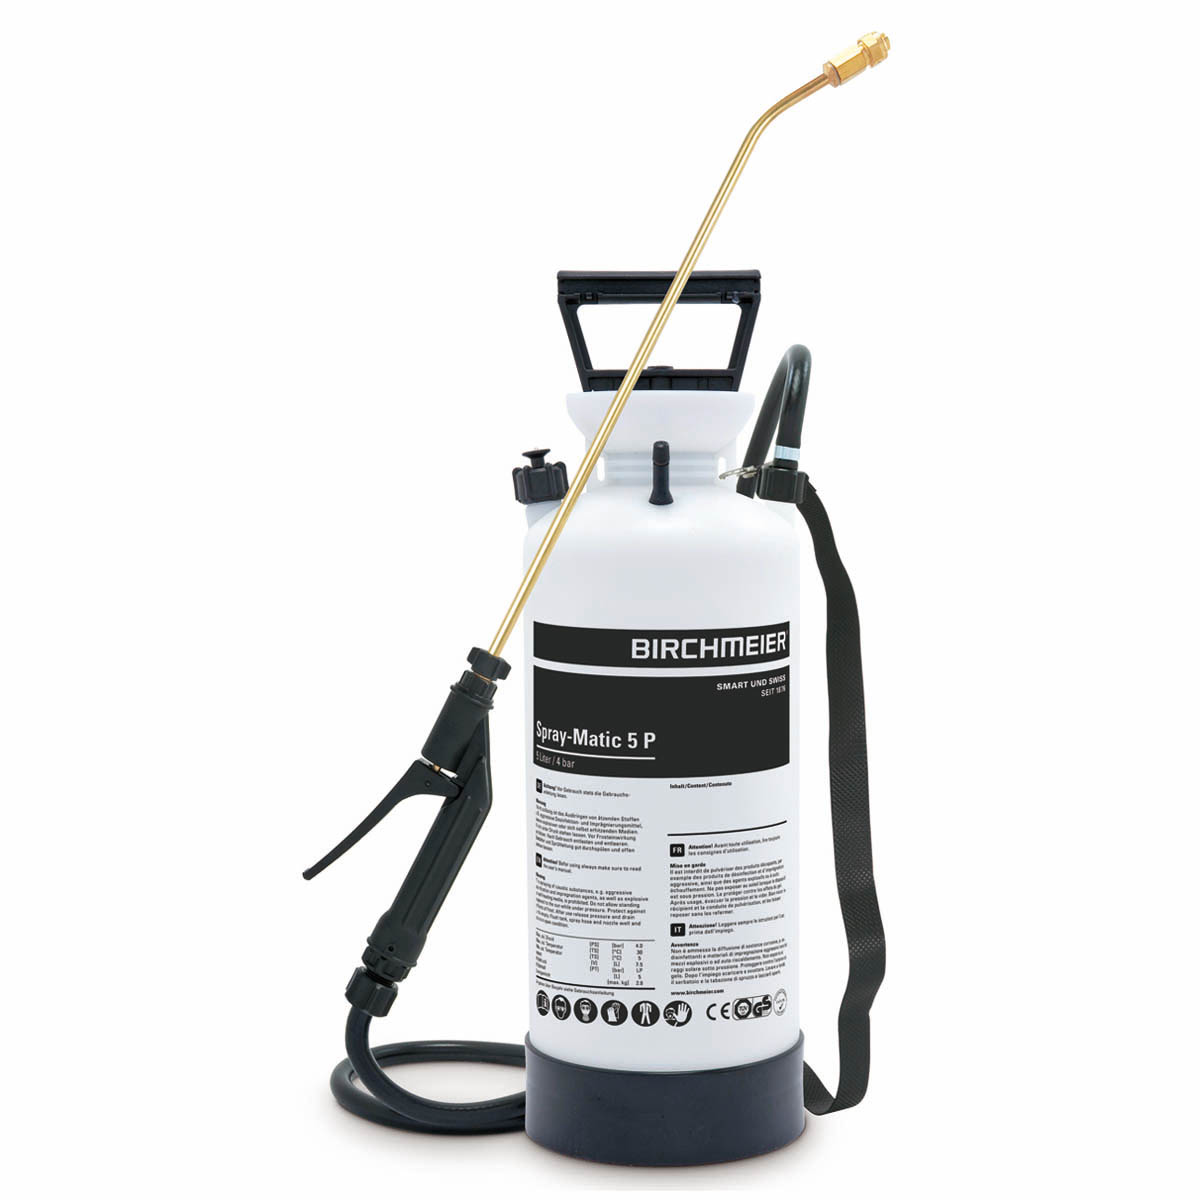 Spray-Matic 5 P